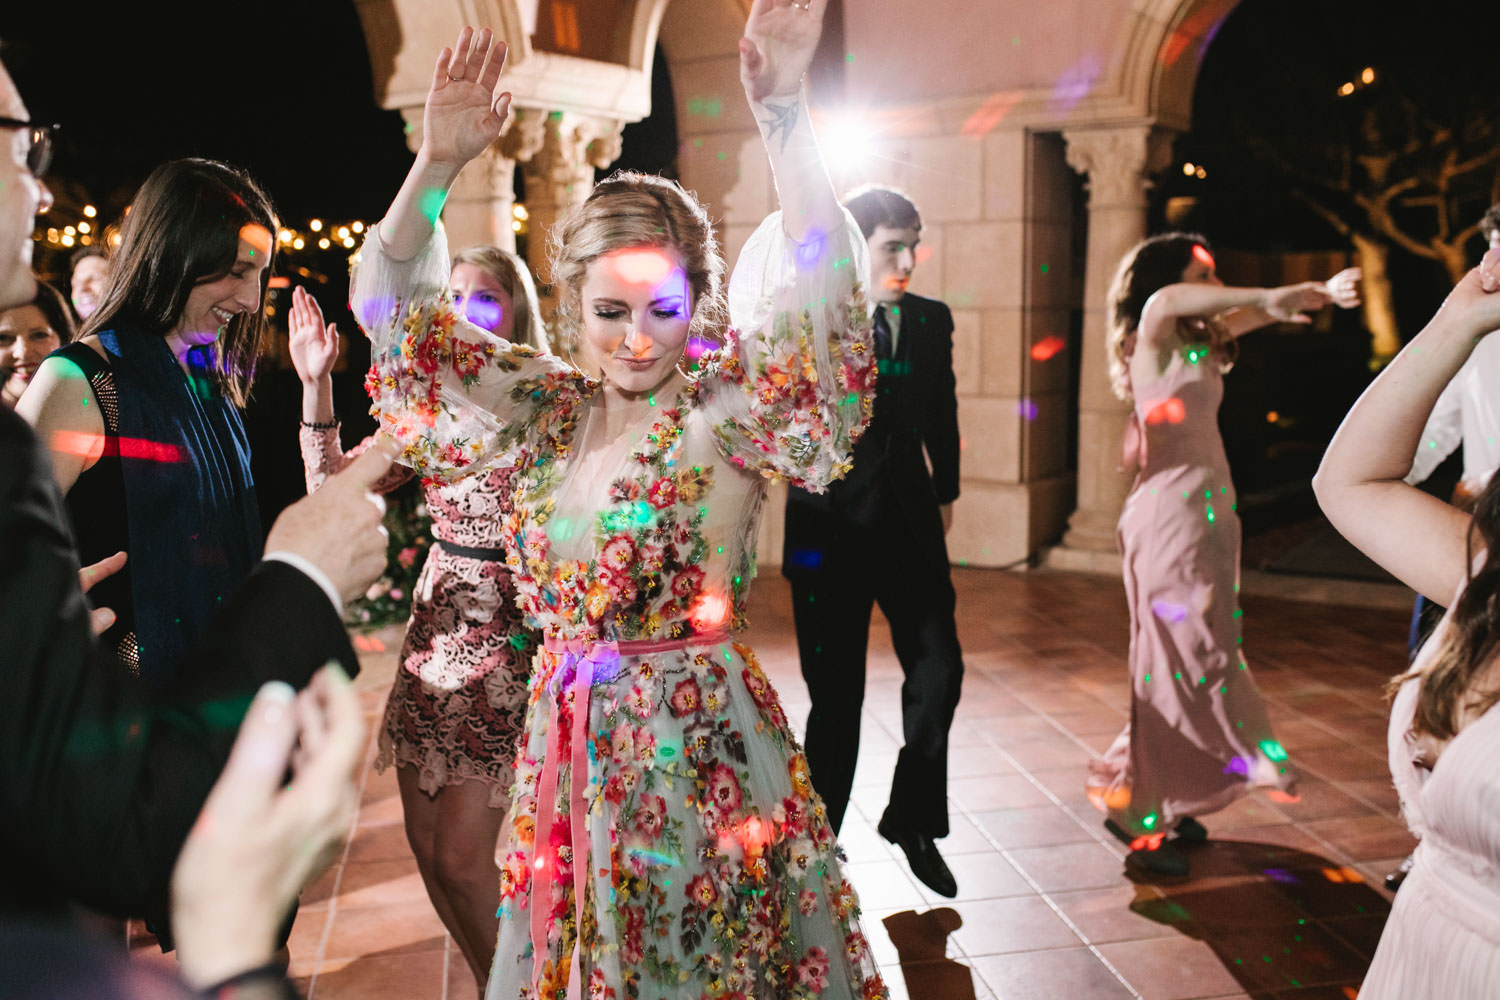 Bride on the dancefloor wearing colorful Marchesa wedding gown with blue, pink, yellow, green, and orange floral appliques. A Wedding Photographer's Fairmont Grand Del Mar Wedding